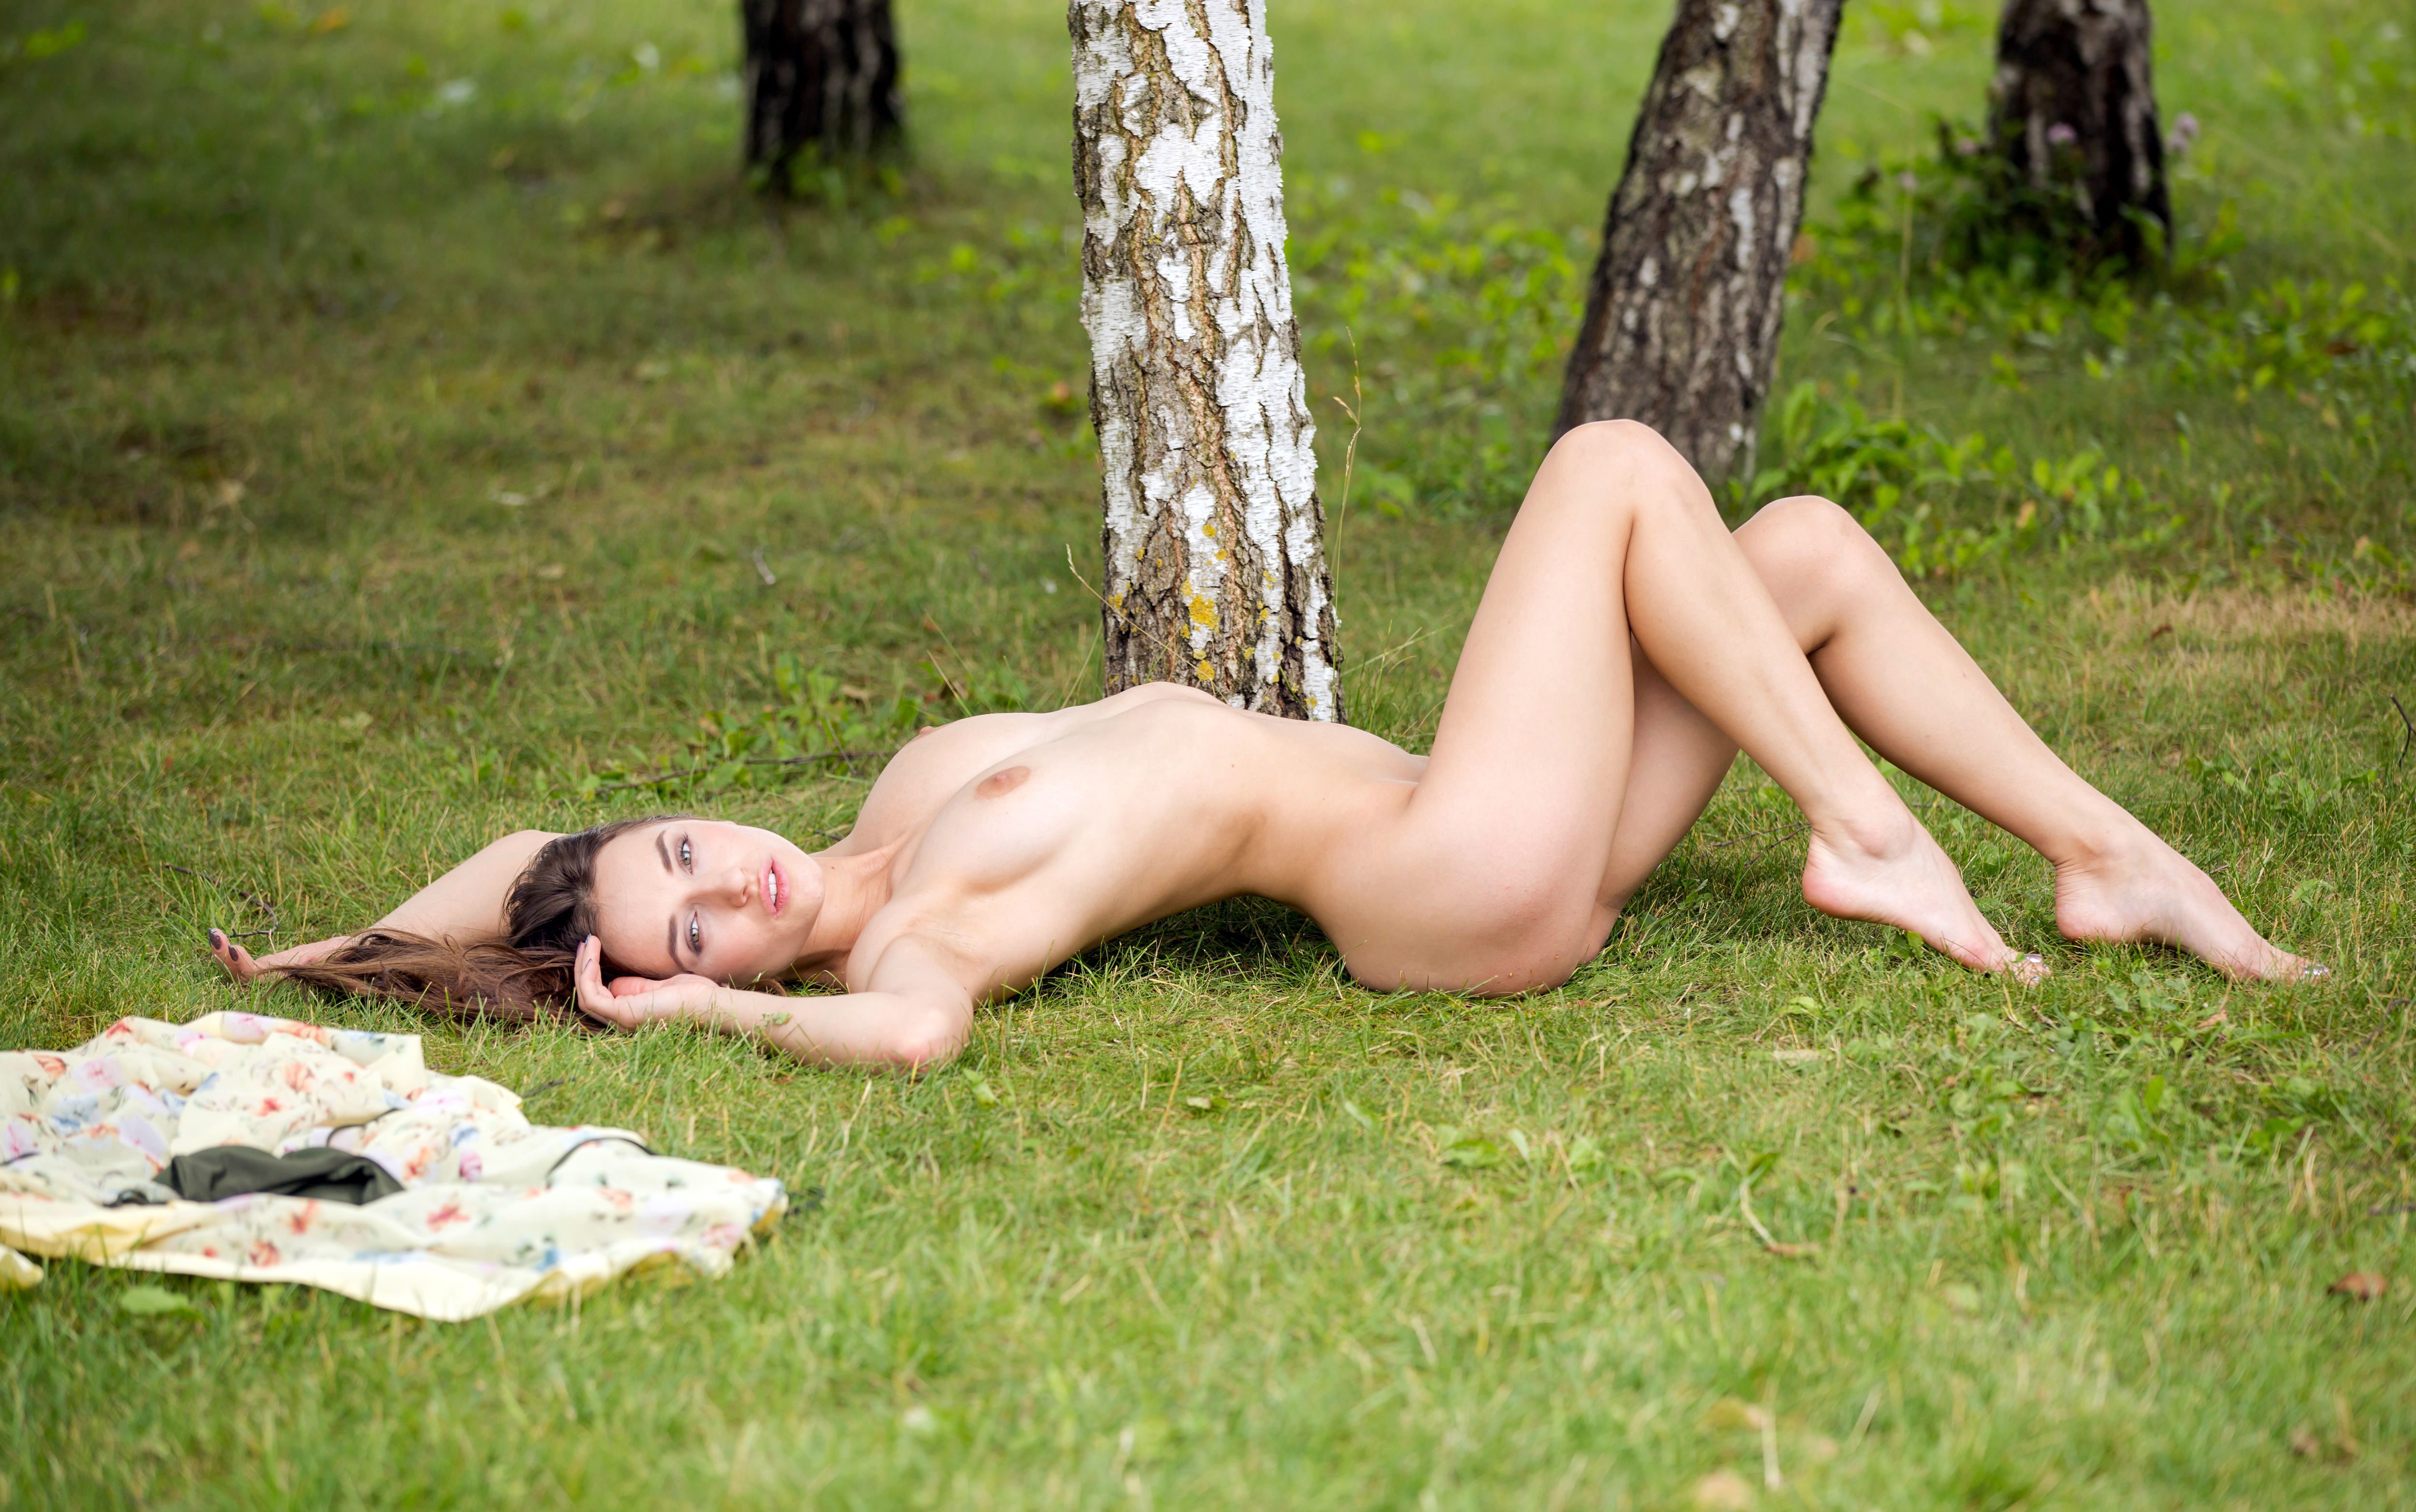 Cutie gloria loves to get naked outdoors